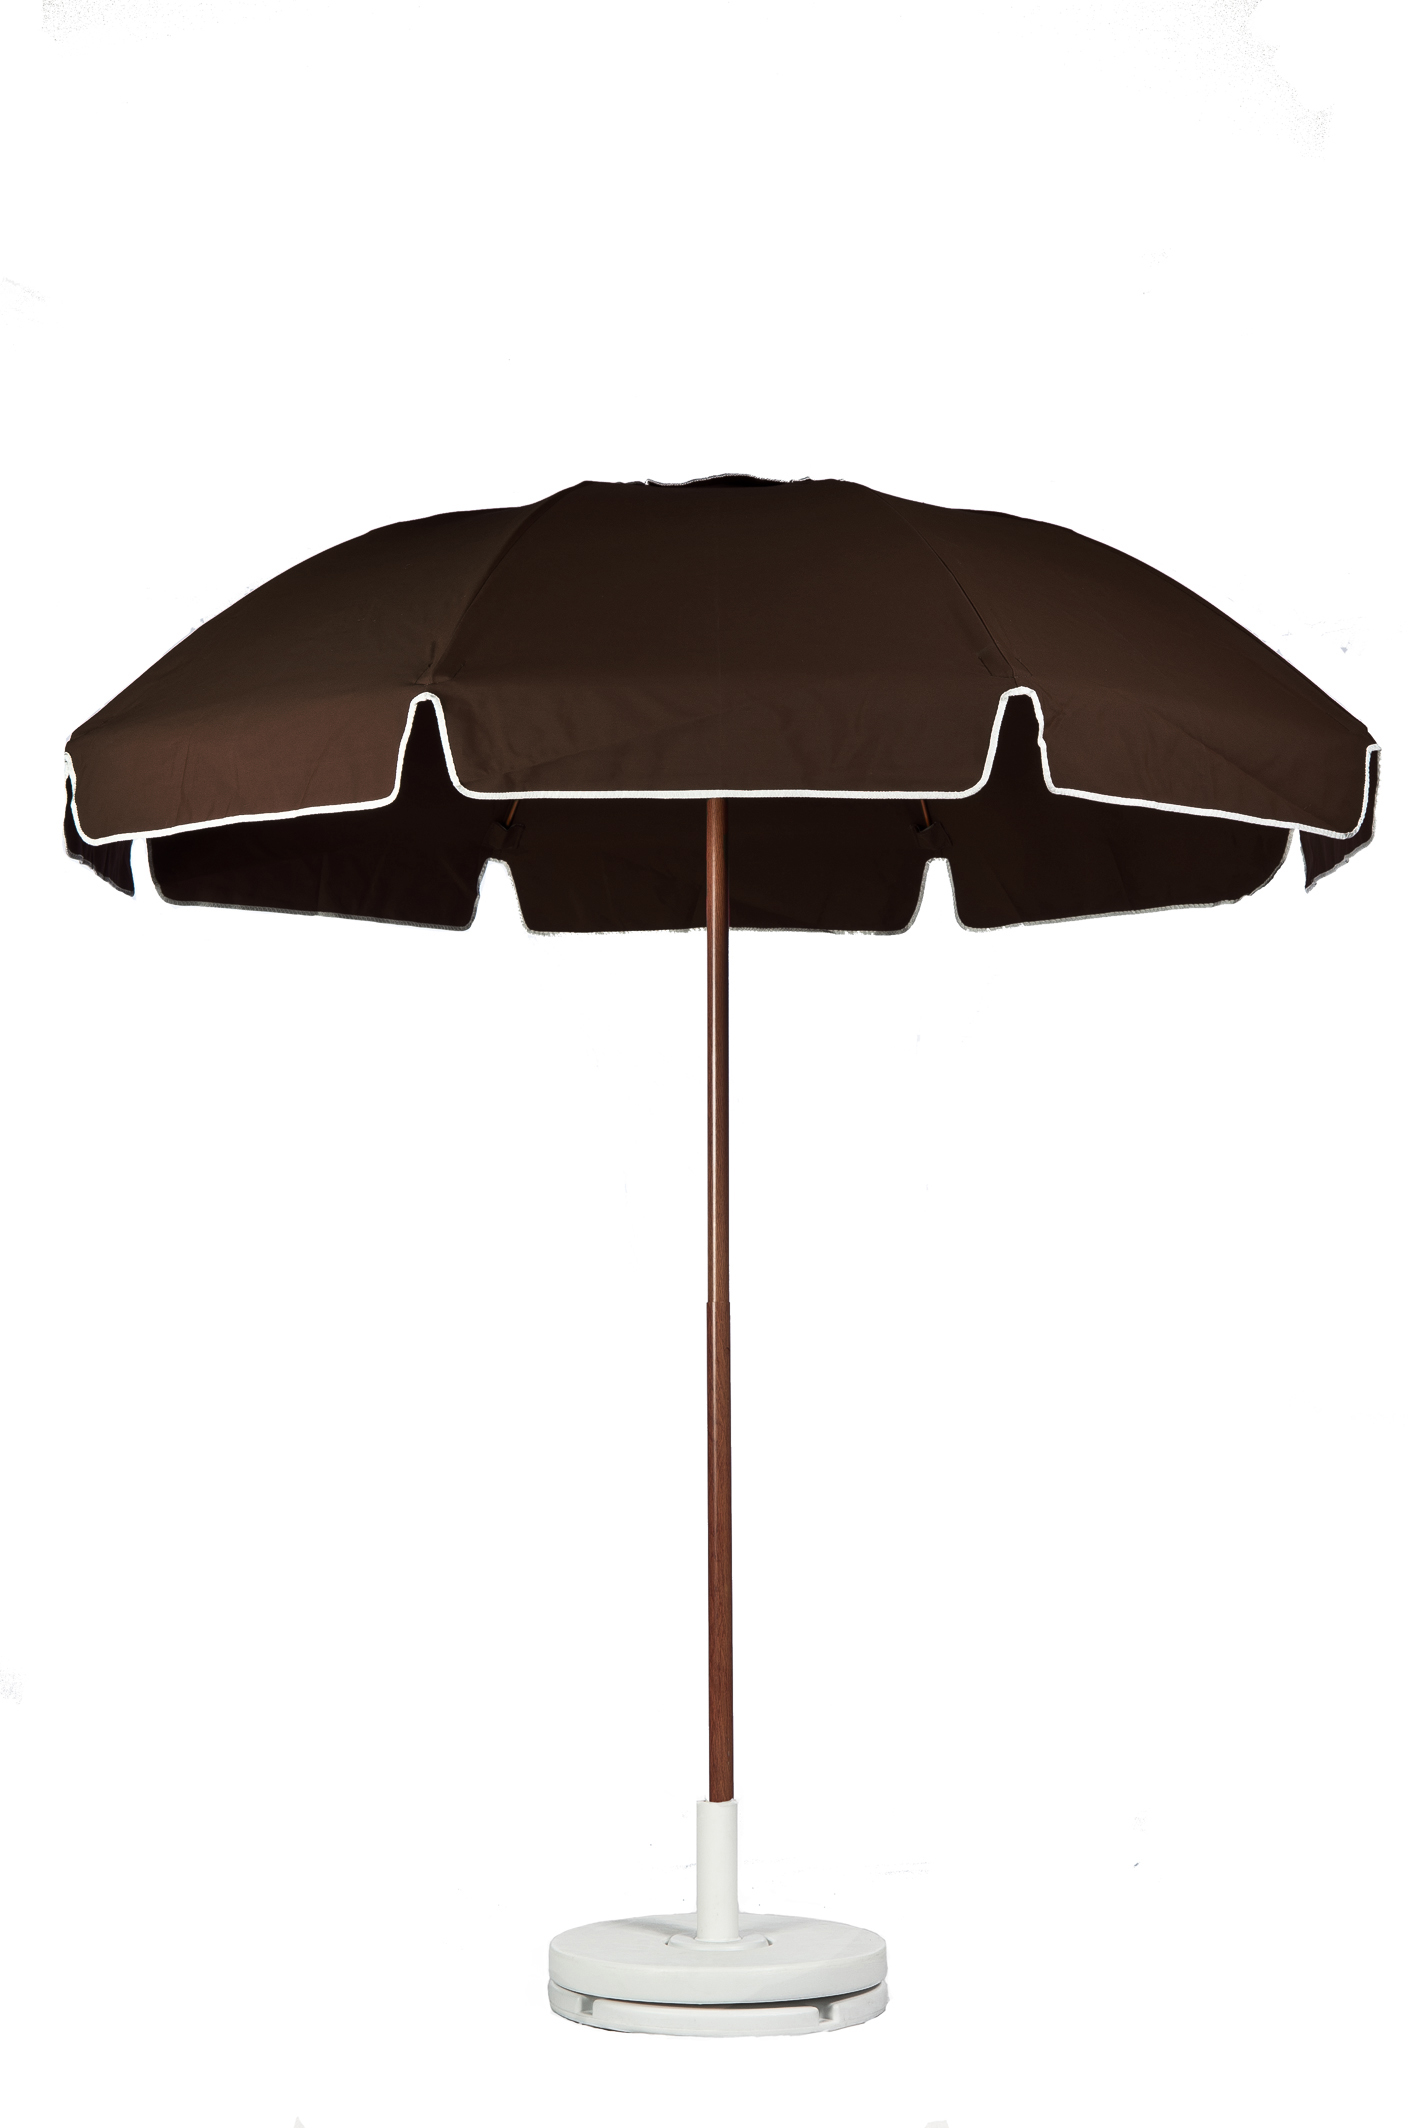 7.5′ PATIO UMBRELLA WITH FIBERGLASS SKELETON WITH VALANCE NO VENT Stock Fabric:$199.00 Custom Fabric:$249.00 *Tilt Available For An Additional $10.00